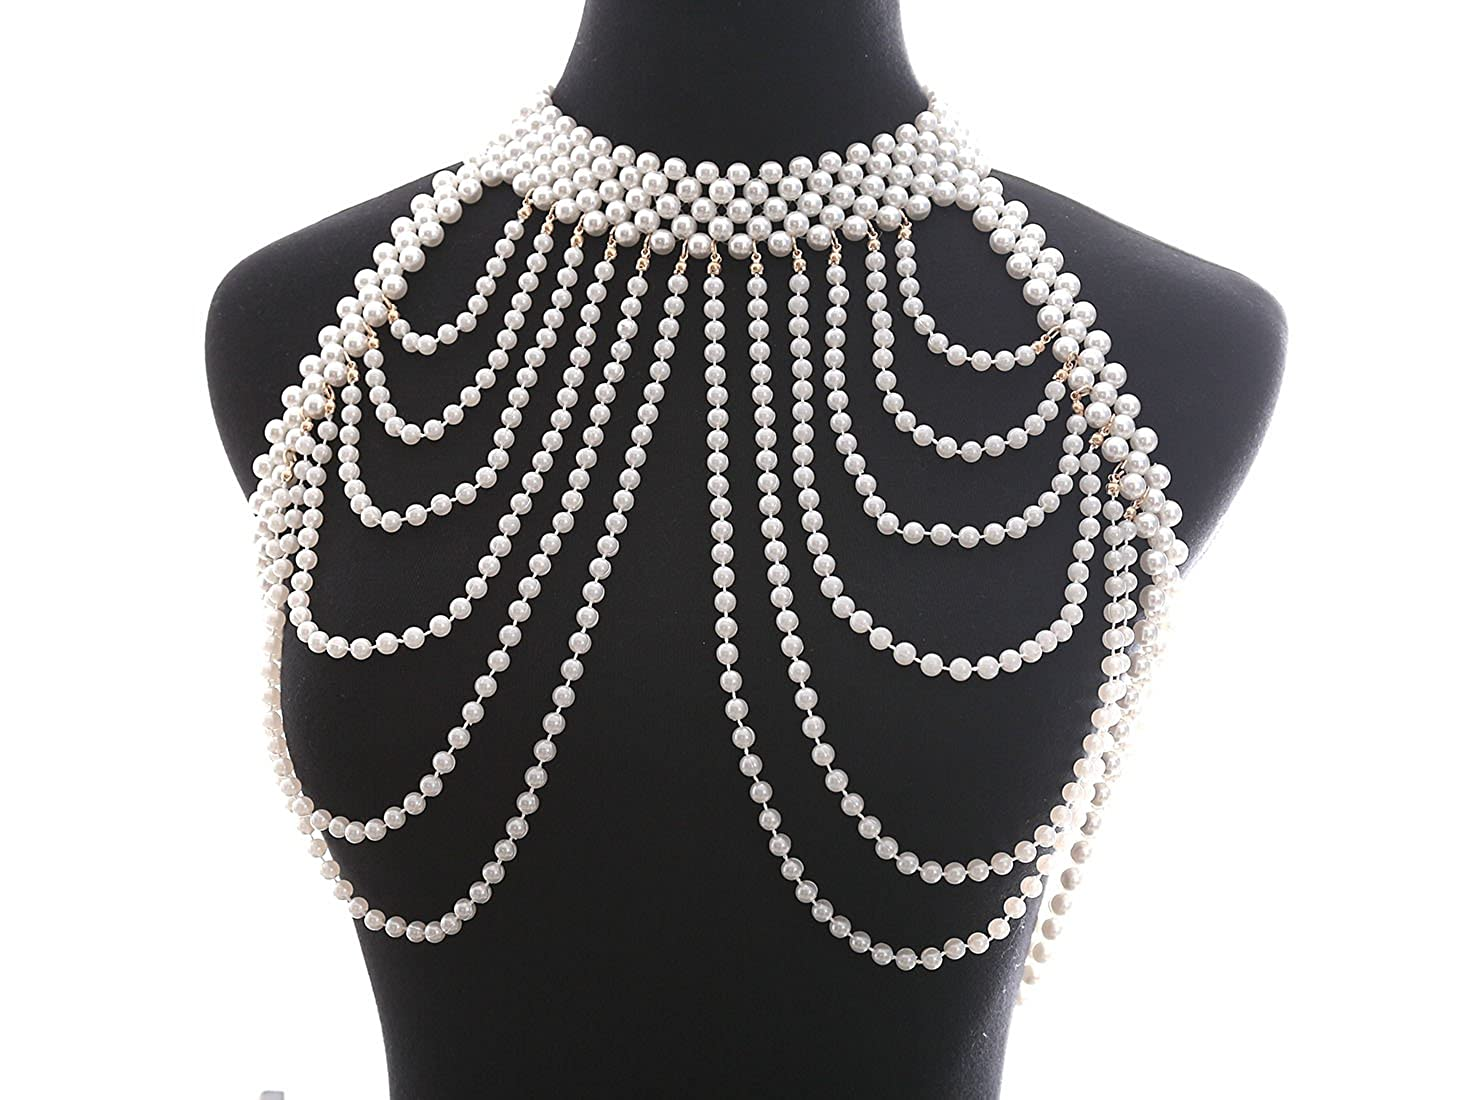 Boderier Handmade Luxury Pearl Choker Necklace Bra Bikini Body Chain Jewelry for Women ZZ6501